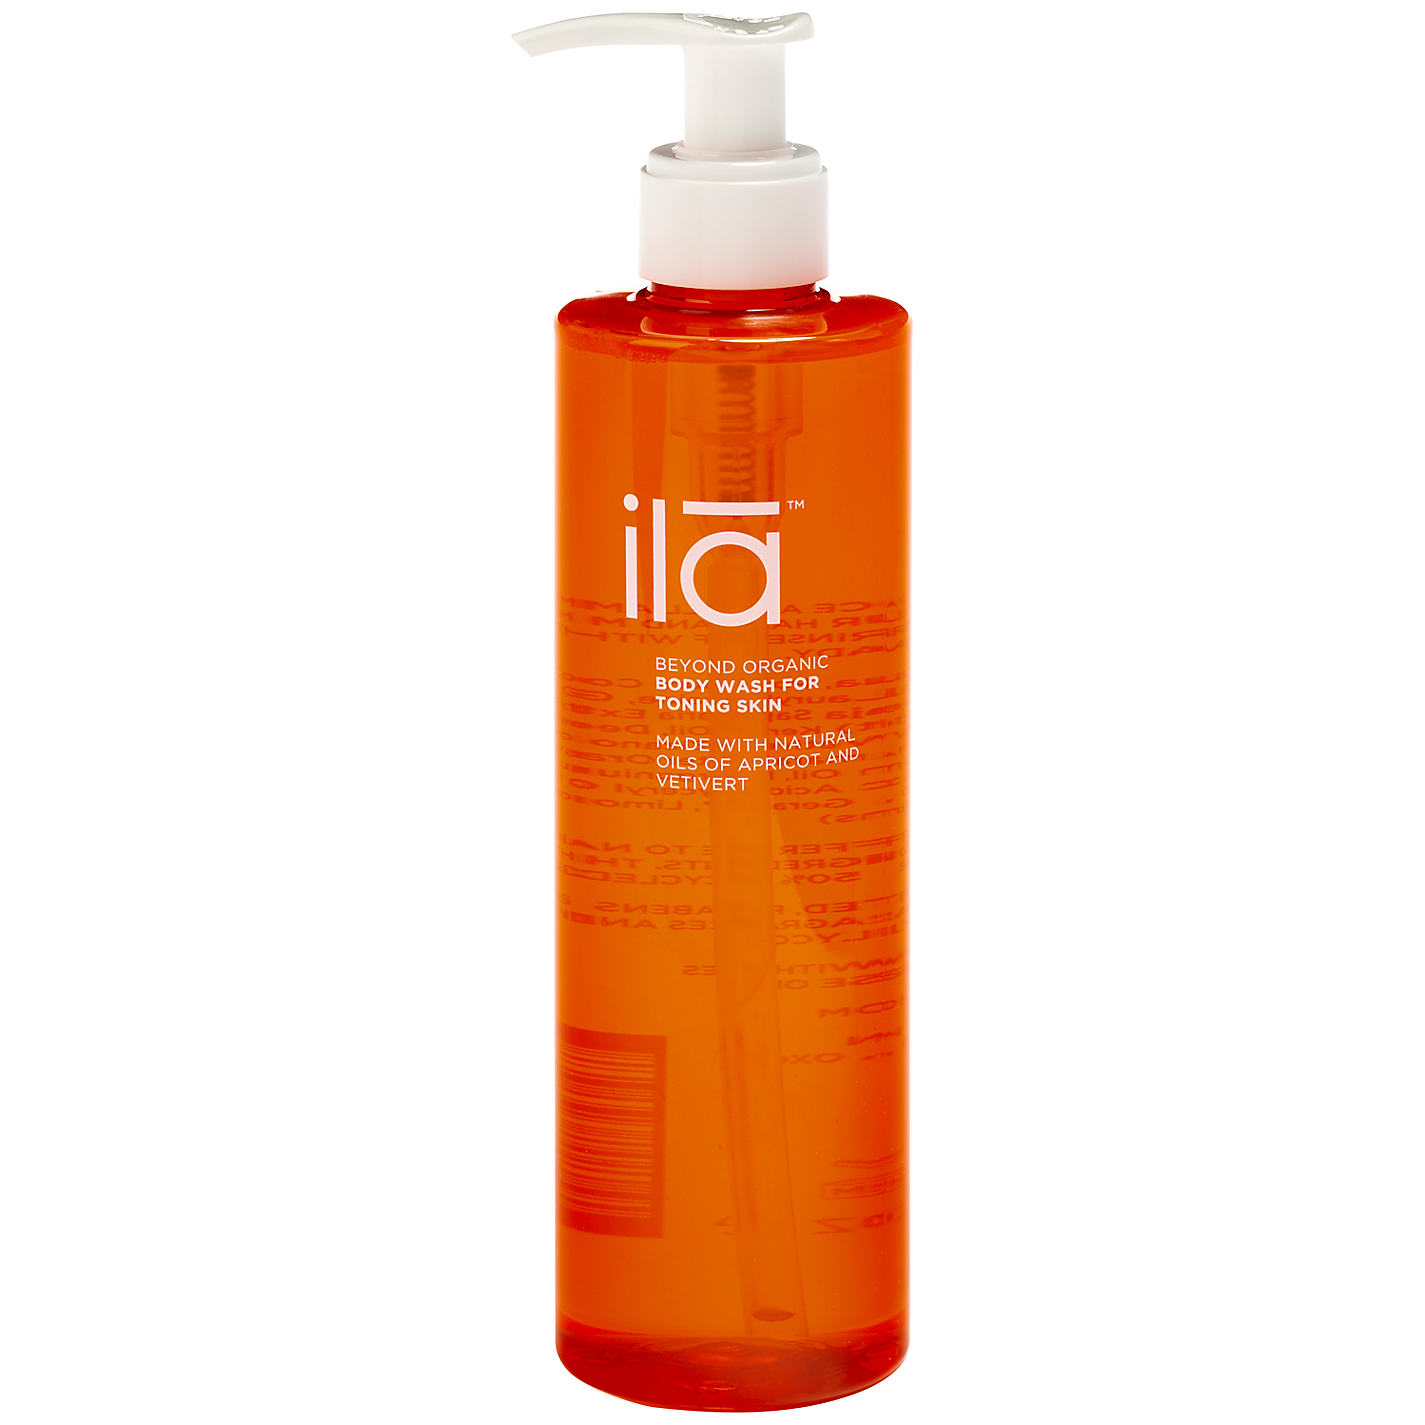 Ila Body Wash Buy Ila Spa Body Wash For